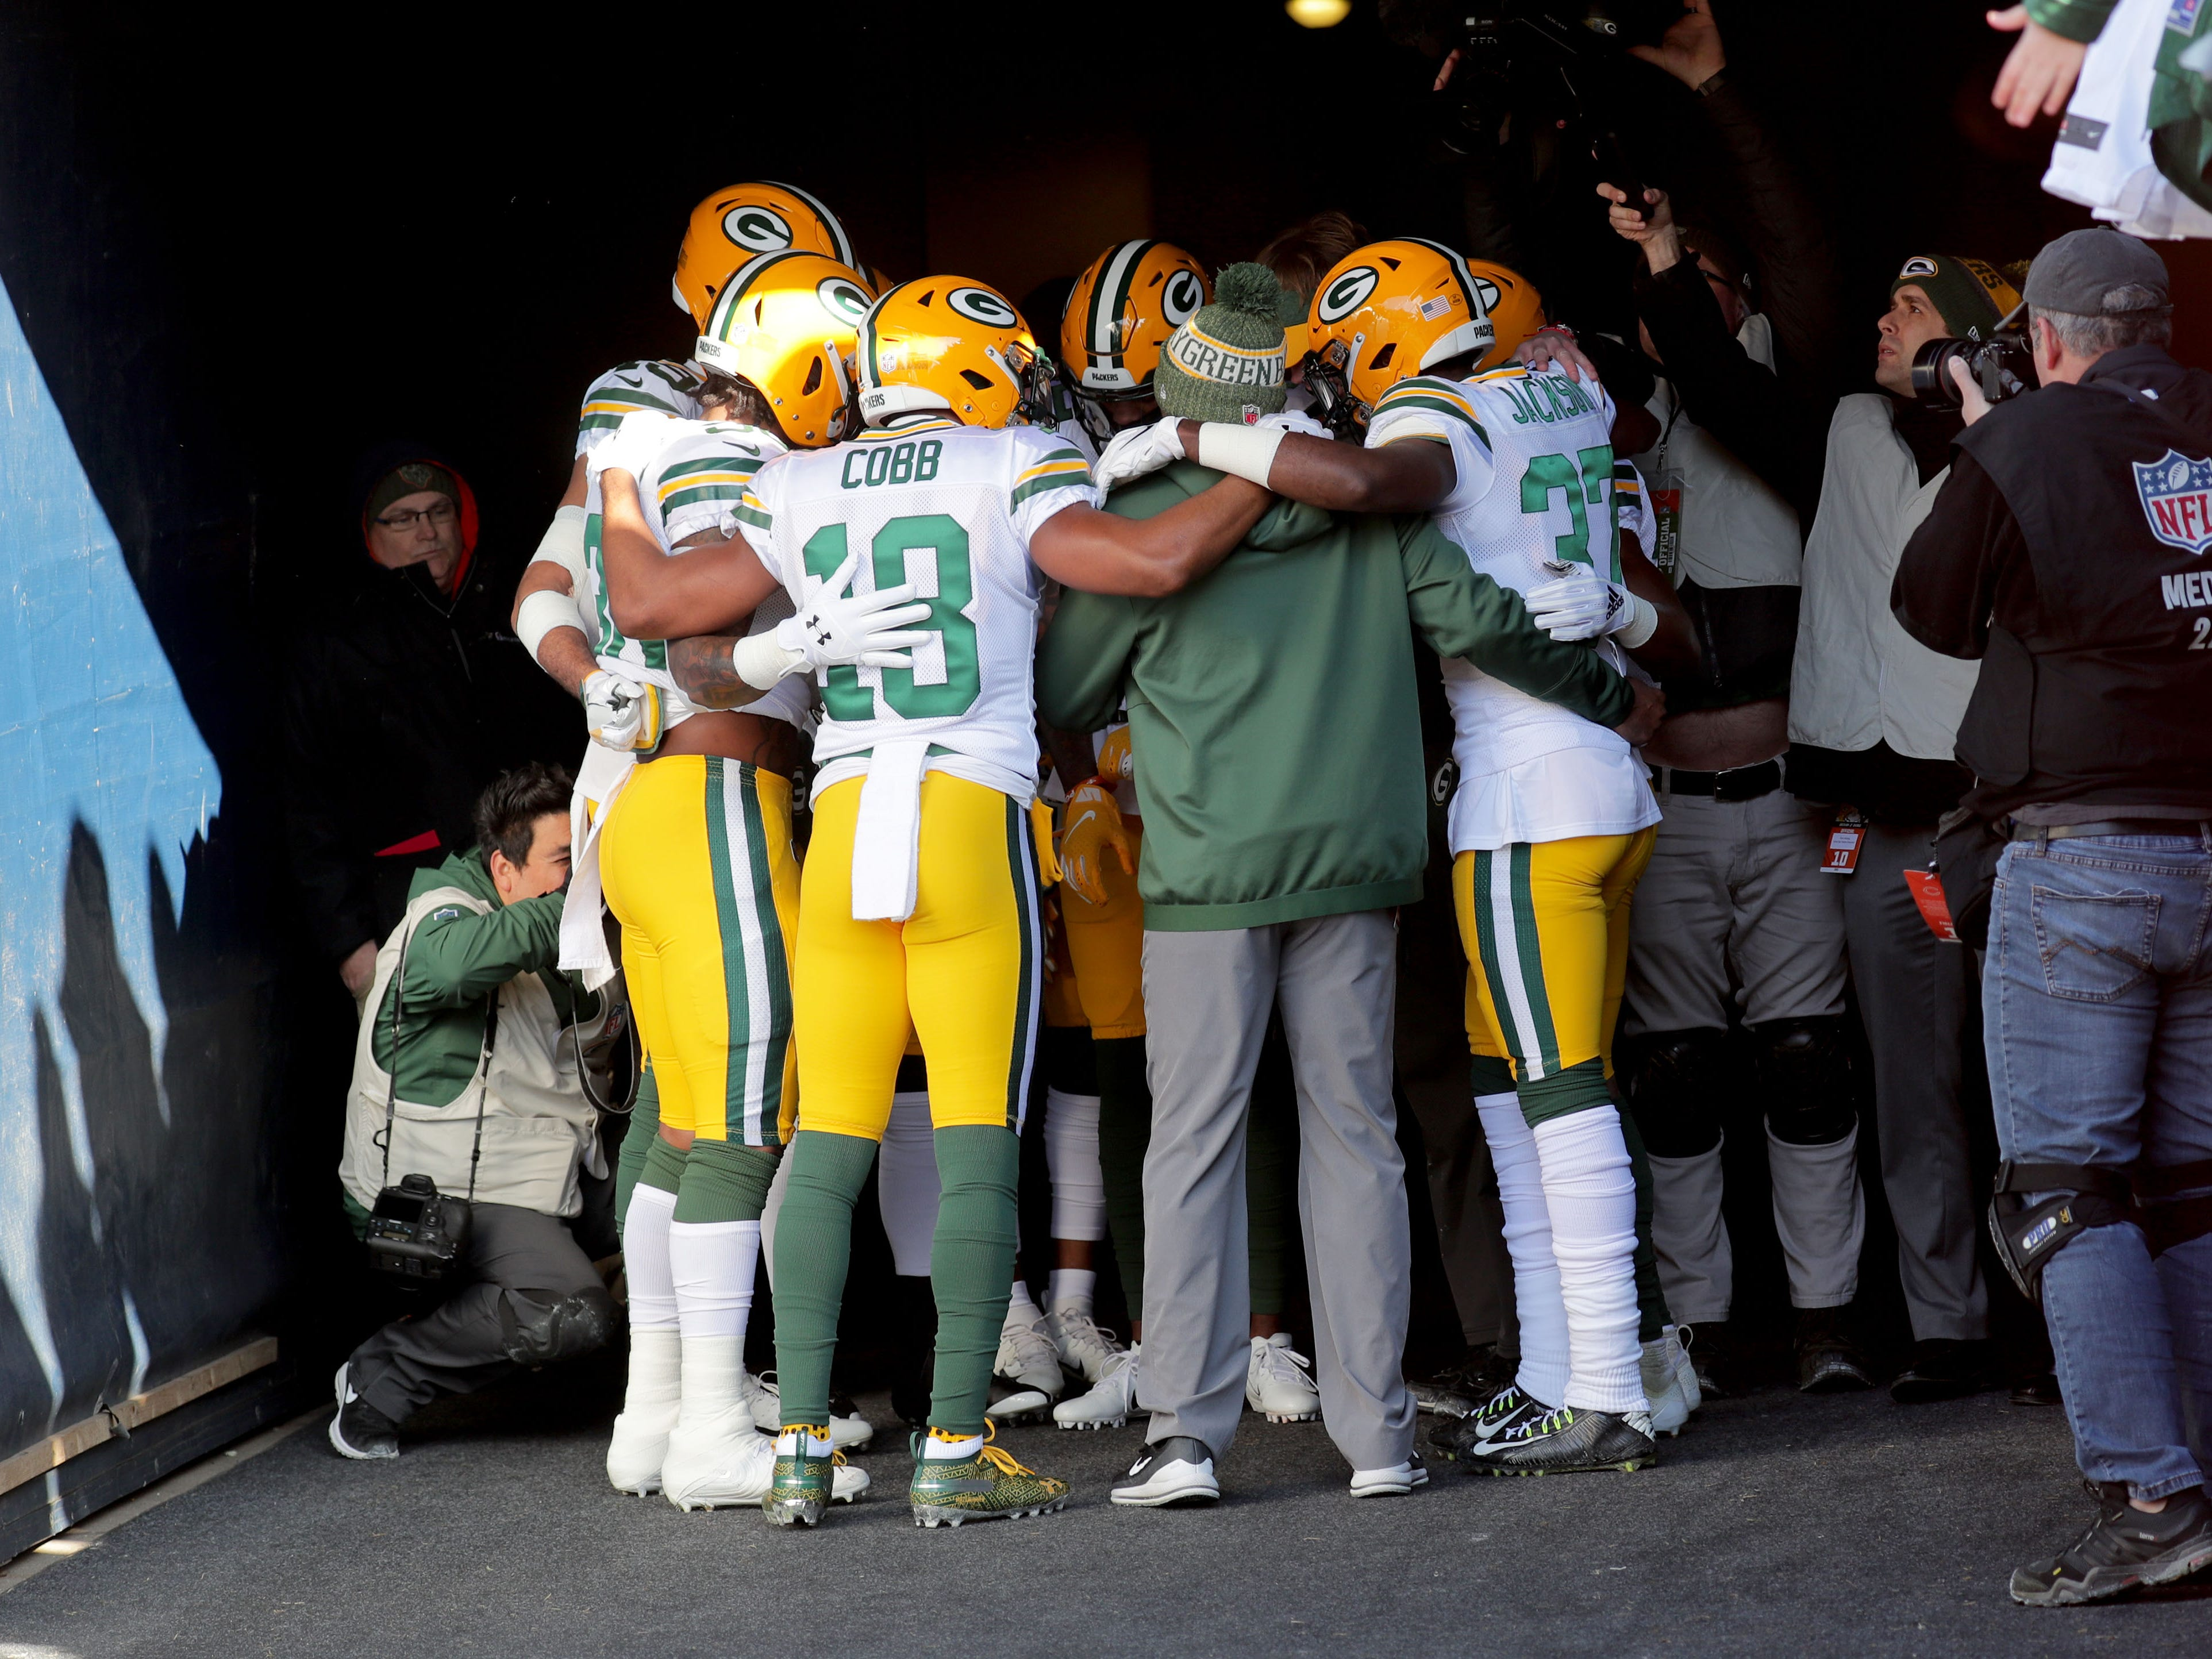 Members of he Green Bay Packers including Randall Cobb gather before heading on the field before practice before the Green Bay Packers game against the Chicago Bears at Soldier Field Sunday, Dec. 16, 2018, in Chicago.